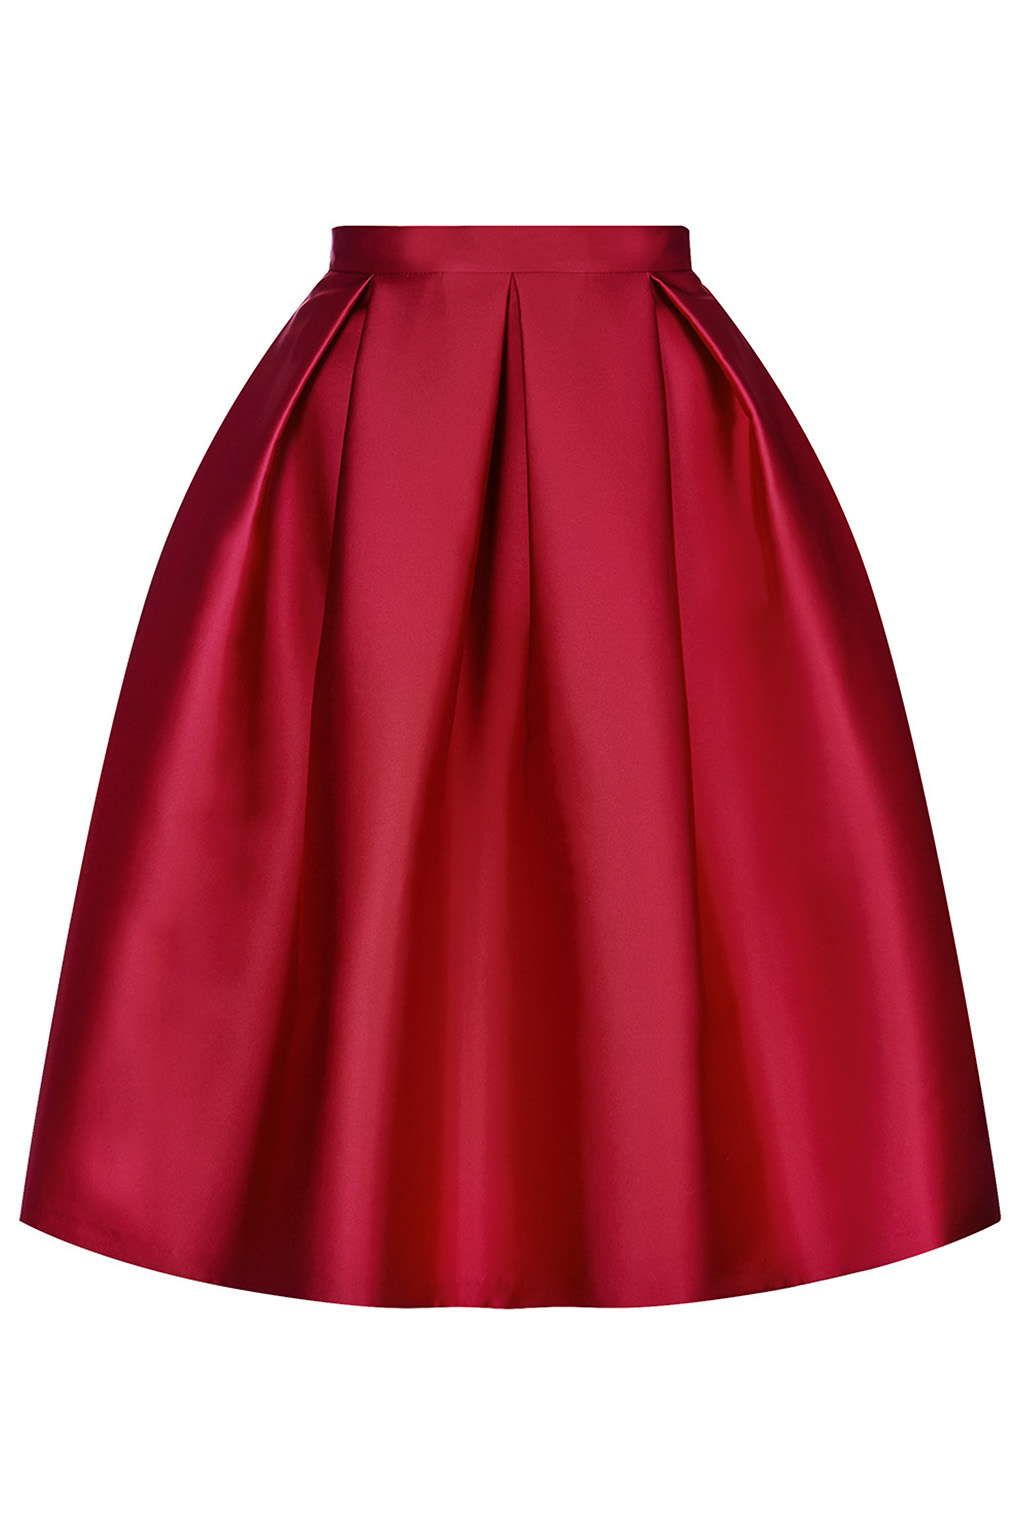 Satin Prom Midi Skirt | Skirts, iOS and Red satin